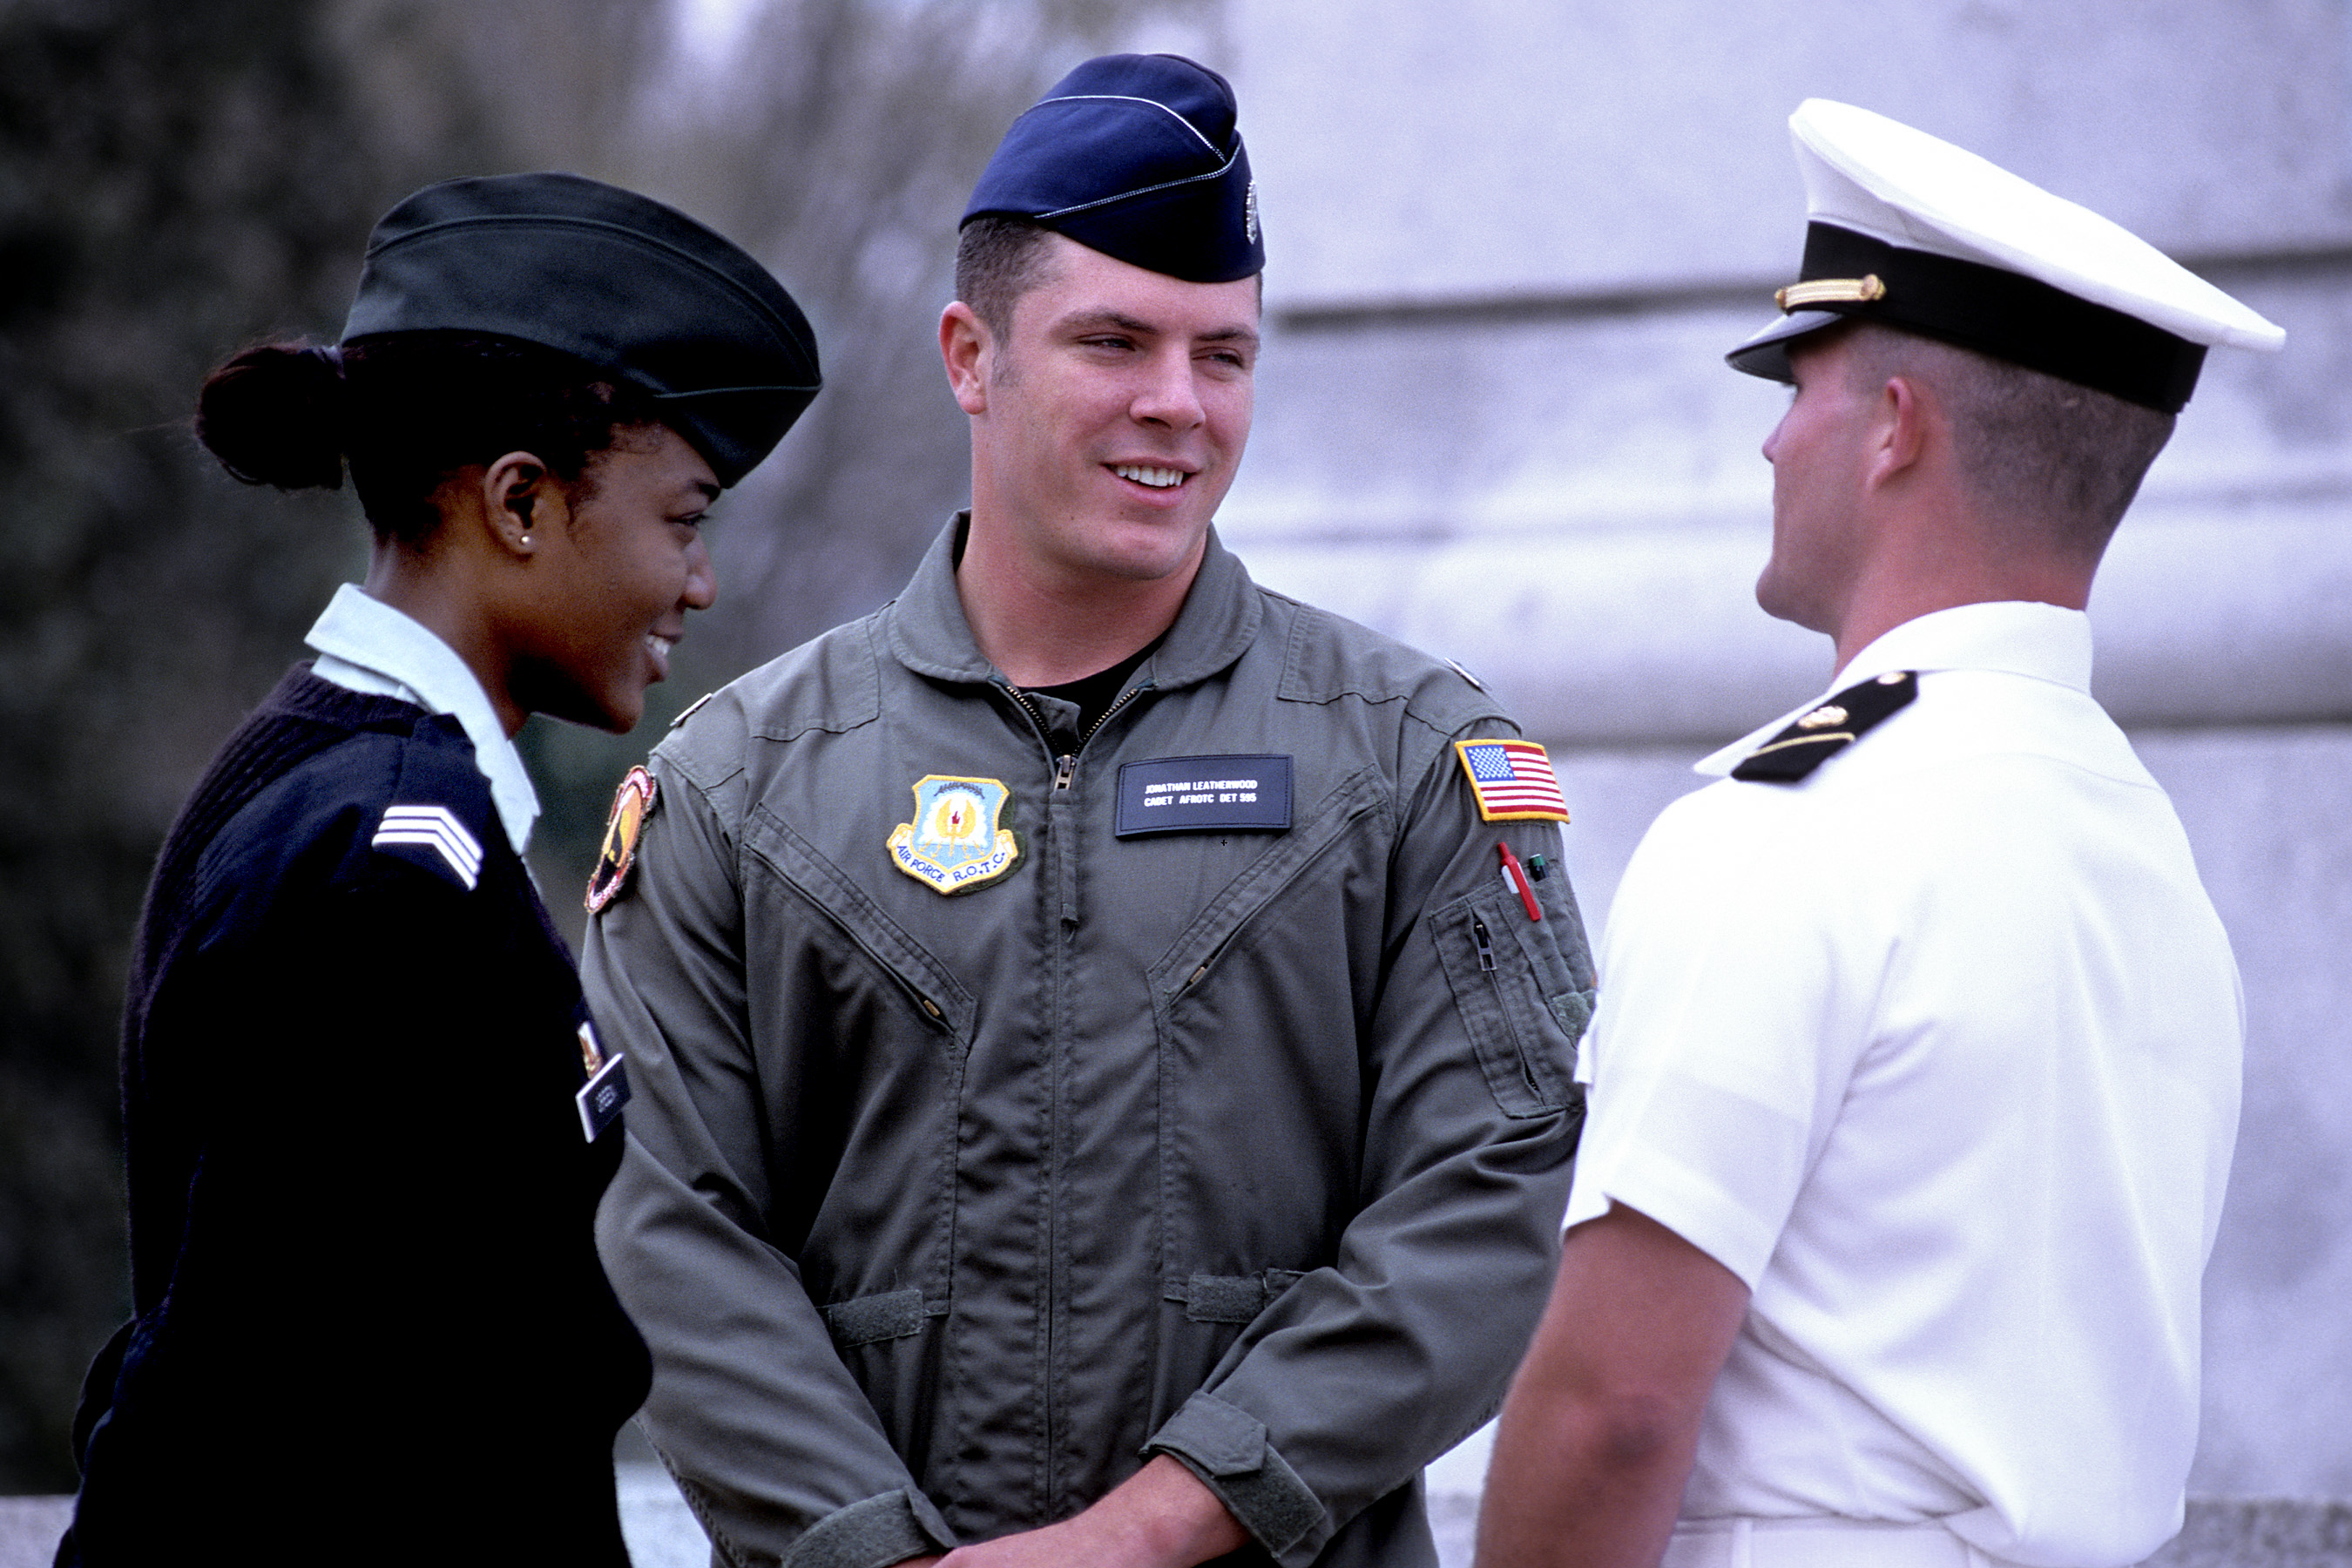 How to get into the ROTC?